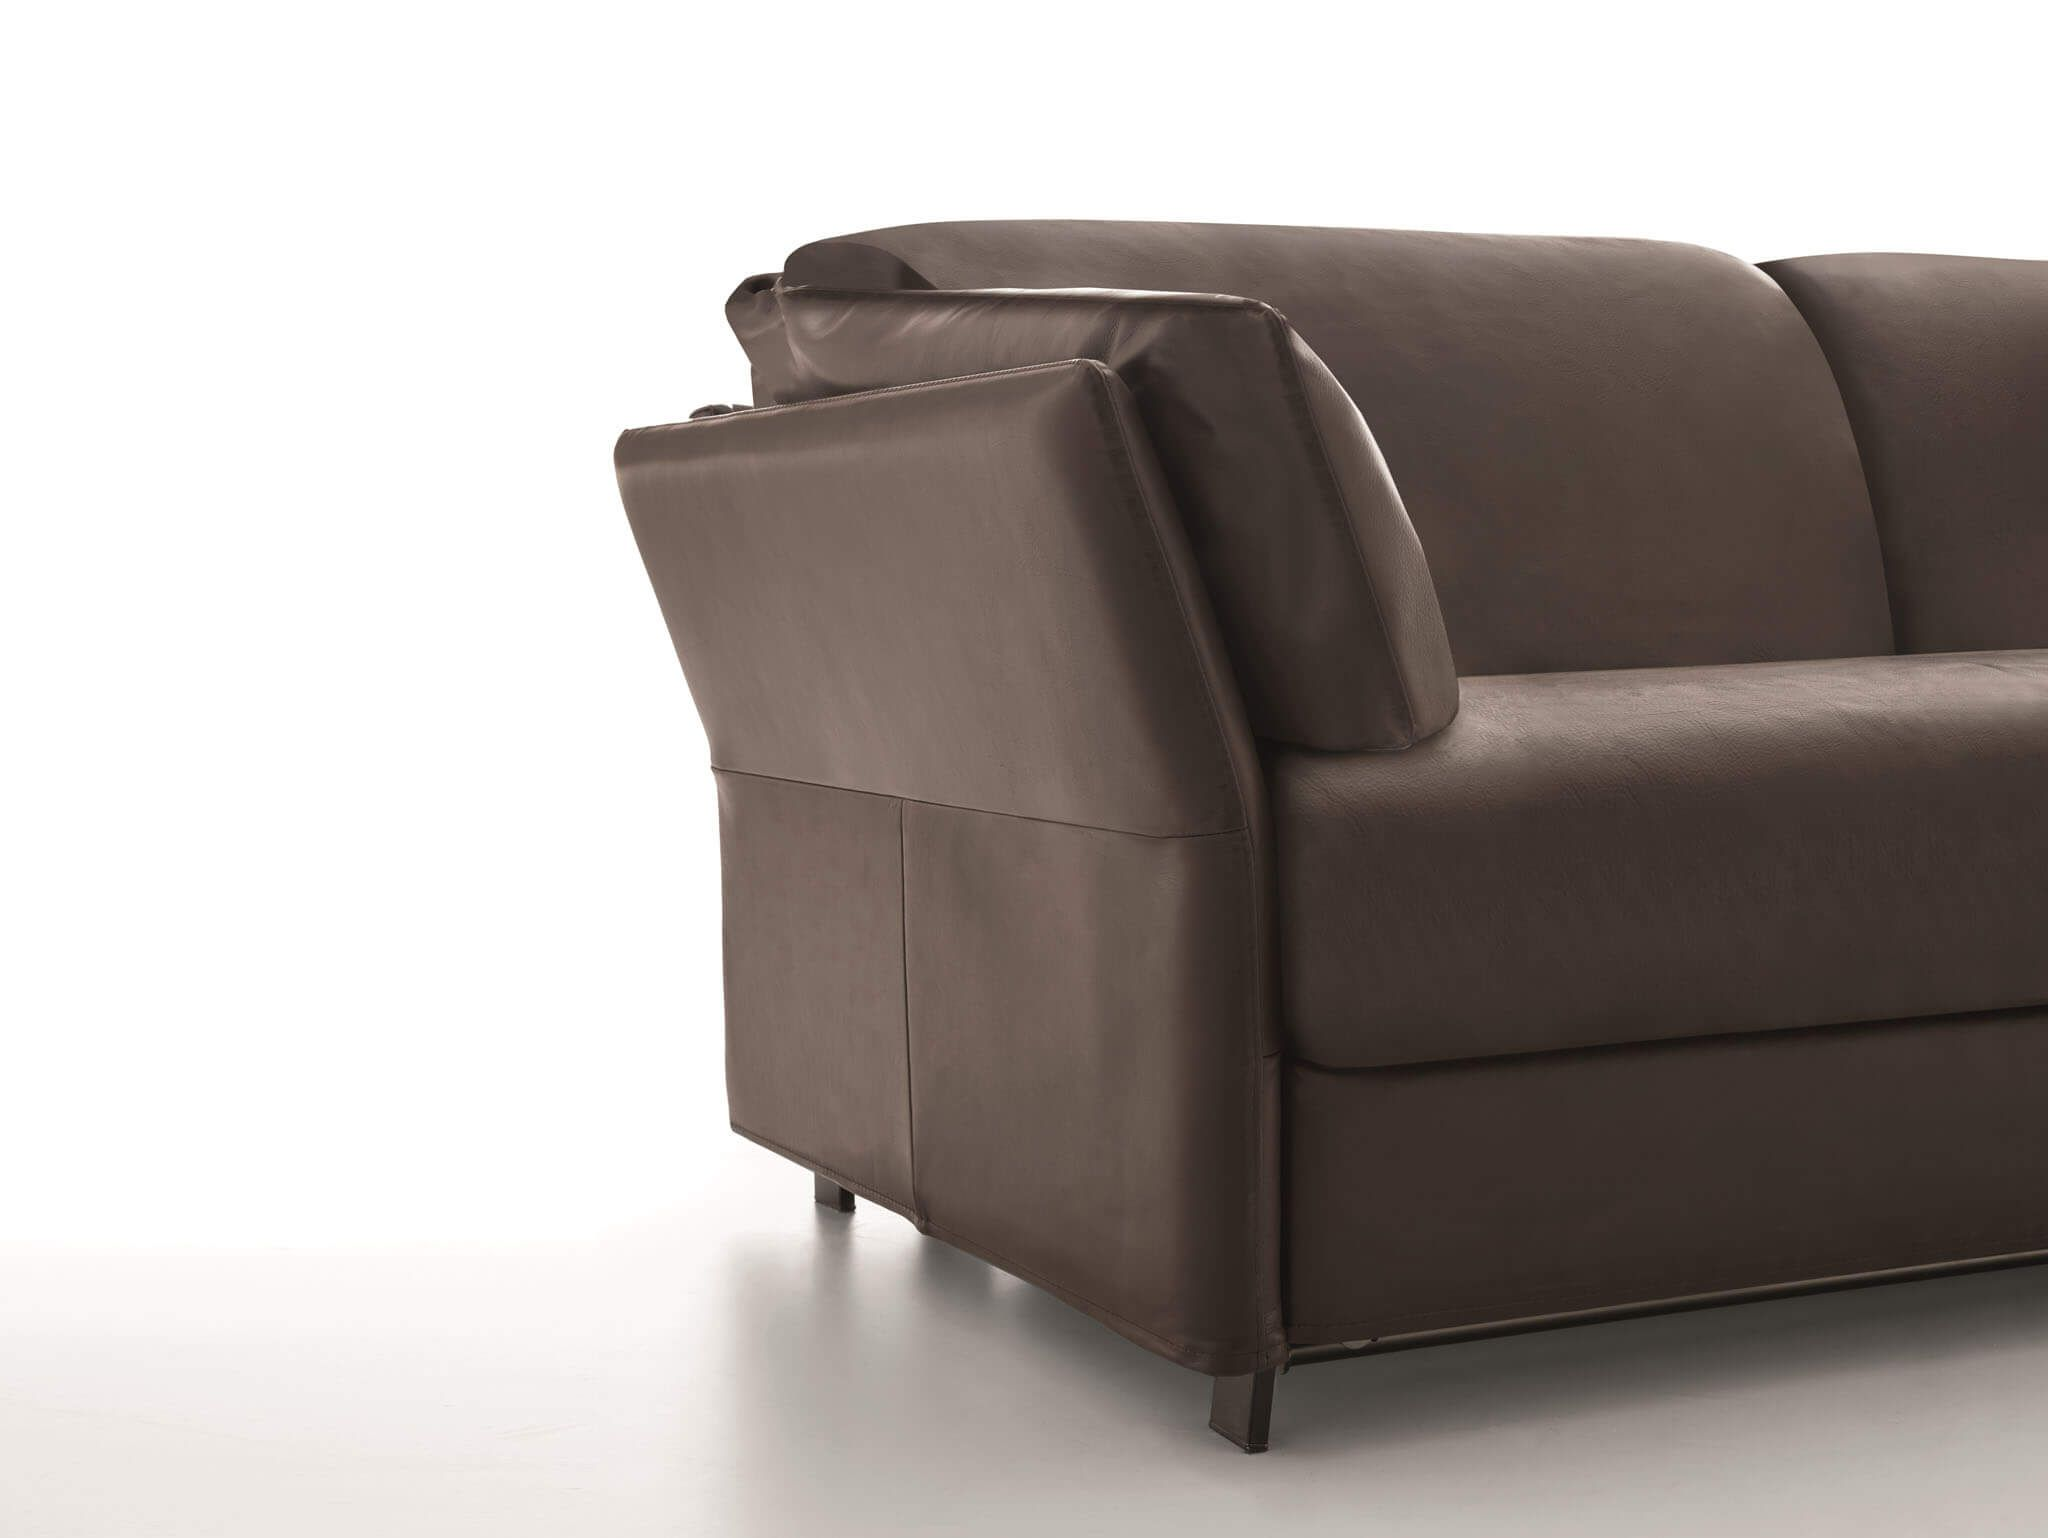 Enjoyable Good Mood Sofa Bed By Ditre Italia Available At Archisesto Bralicious Painted Fabric Chair Ideas Braliciousco